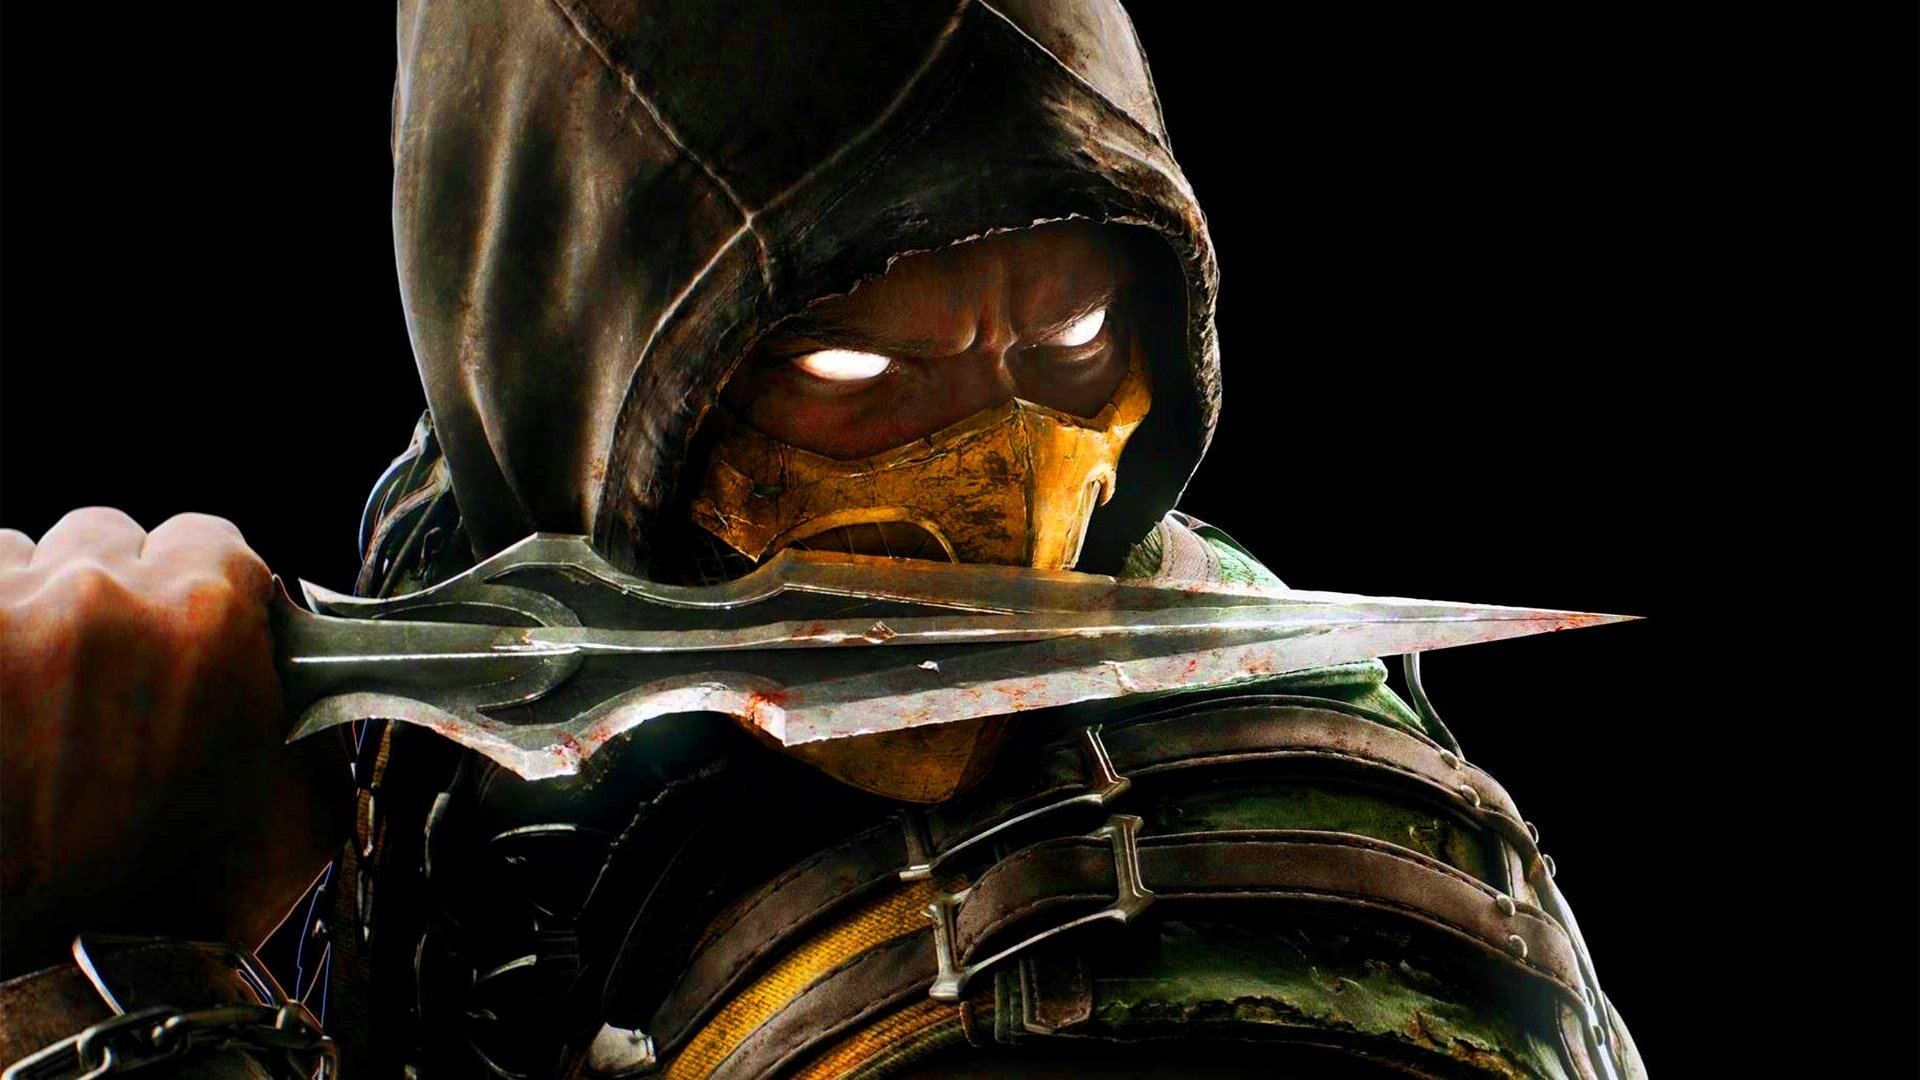 Mortal Kombat X Scorpion With Knife 1920 x 1080 Download Close 1920x1080